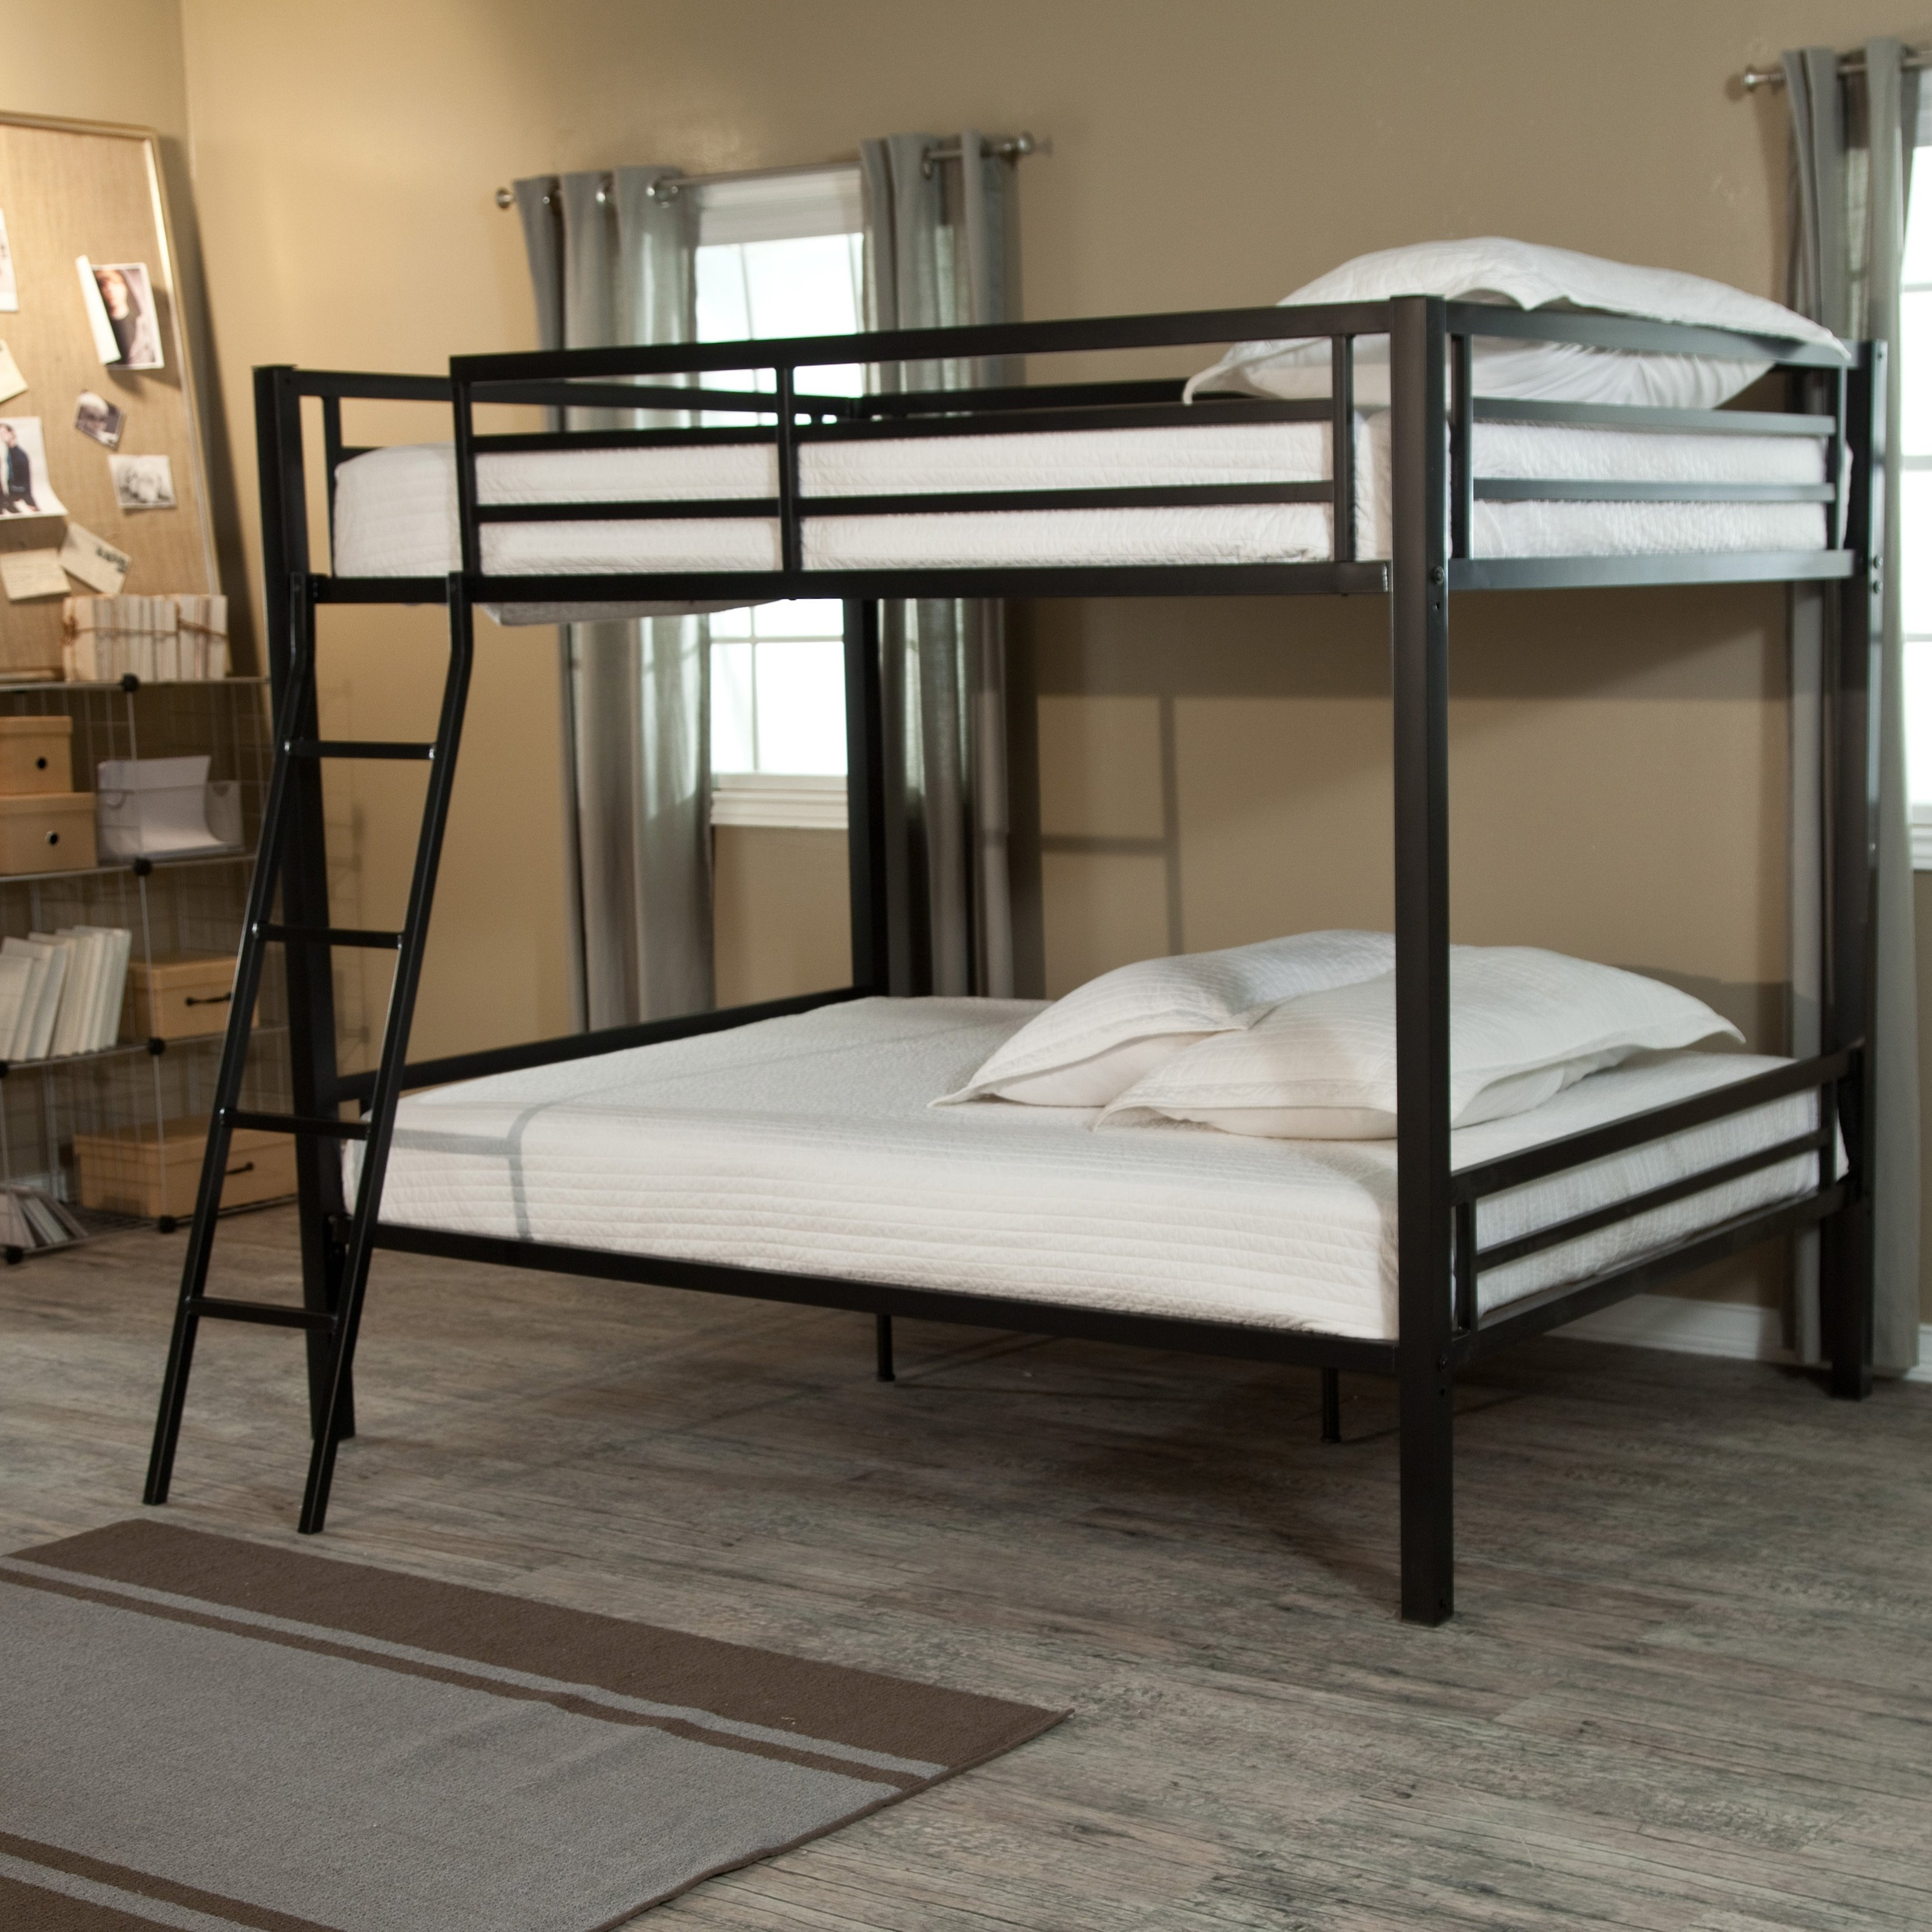 Permalink to Loft Bed Frames For Adults